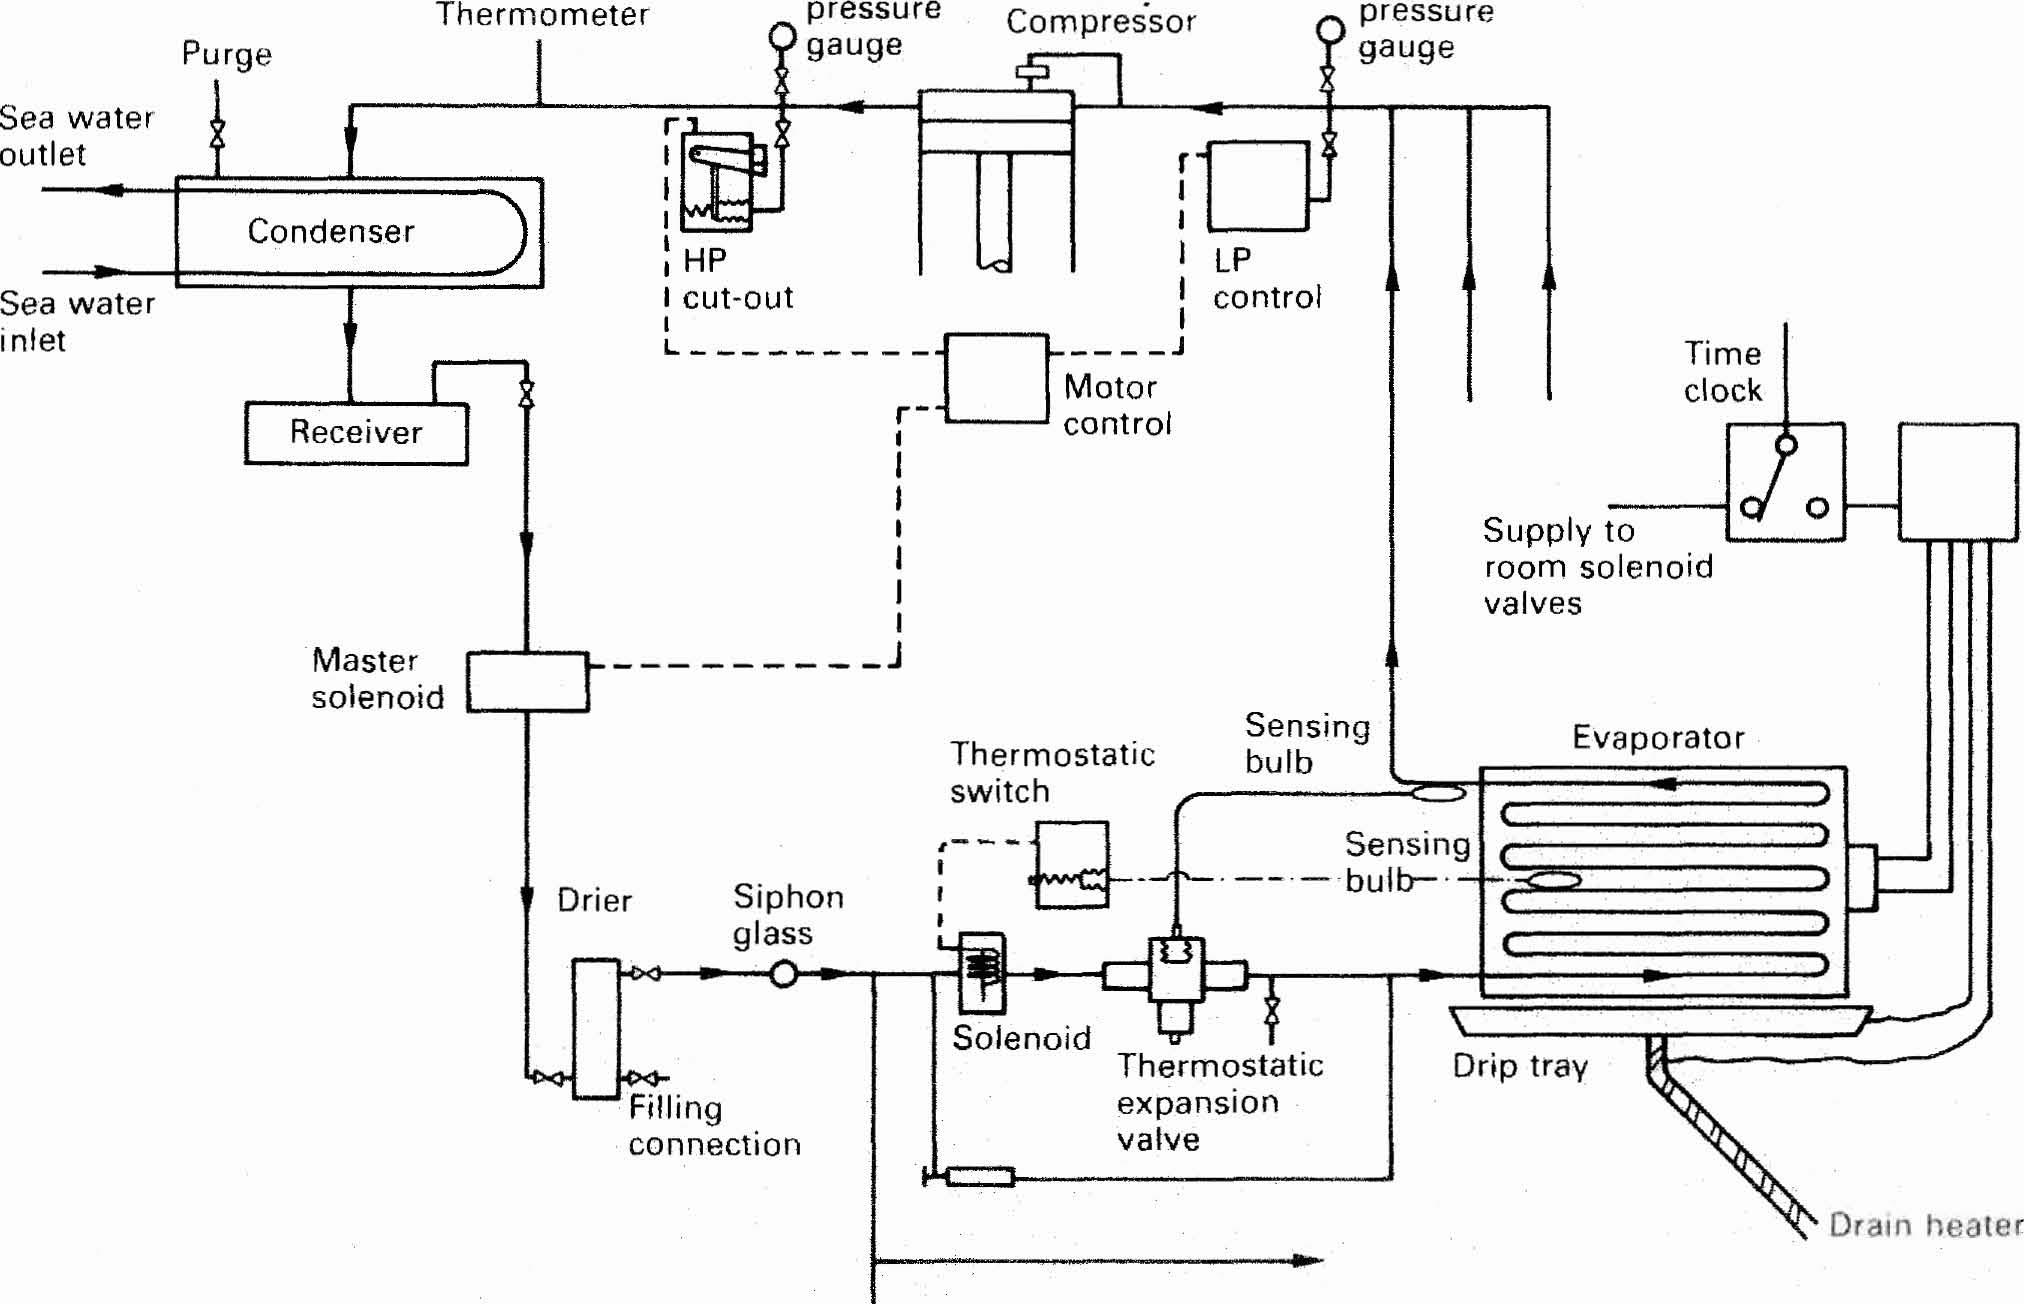 basic central air wiring diagram with Refrigeration Diagram Board on Residential Air Conditioning Diagram besides Ahu Air Handling Unit System Of Hvac further Famous Heat Pump Wiring Diagram Schematic Gallery Electrical Endear besides How The Ignition System Works together with Amana Ptac Wiring Schematic.